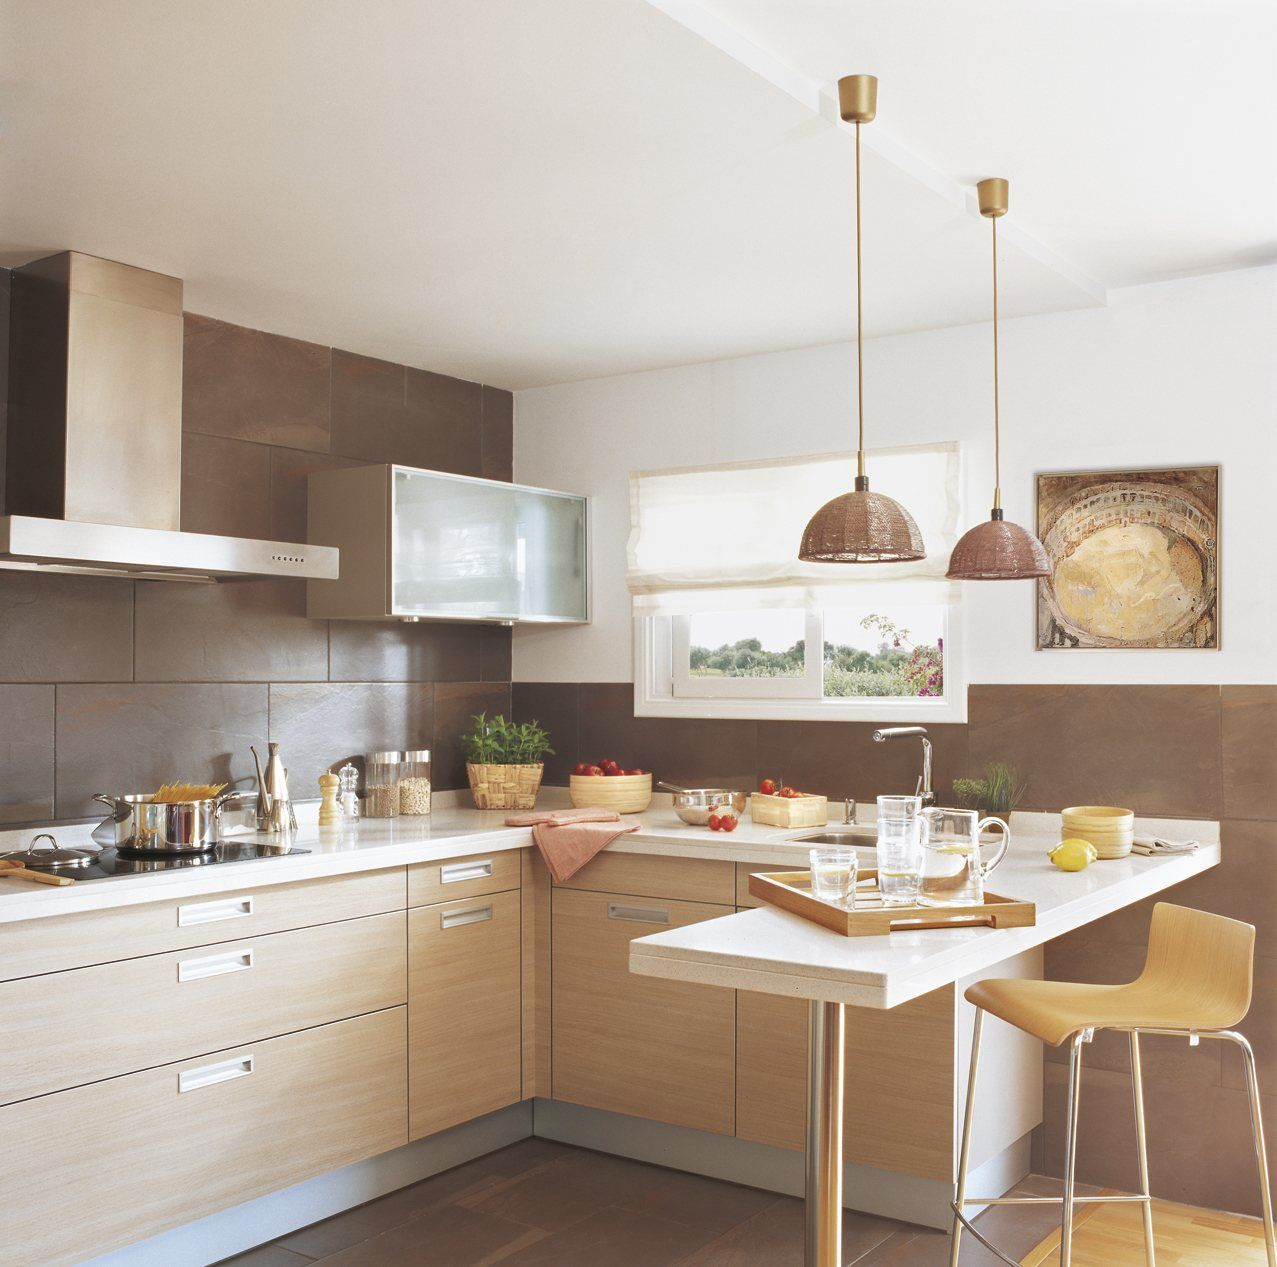 15 cocinas peque as y muy bonitas kitchens ideas para for Ideas para cocinas pequenas